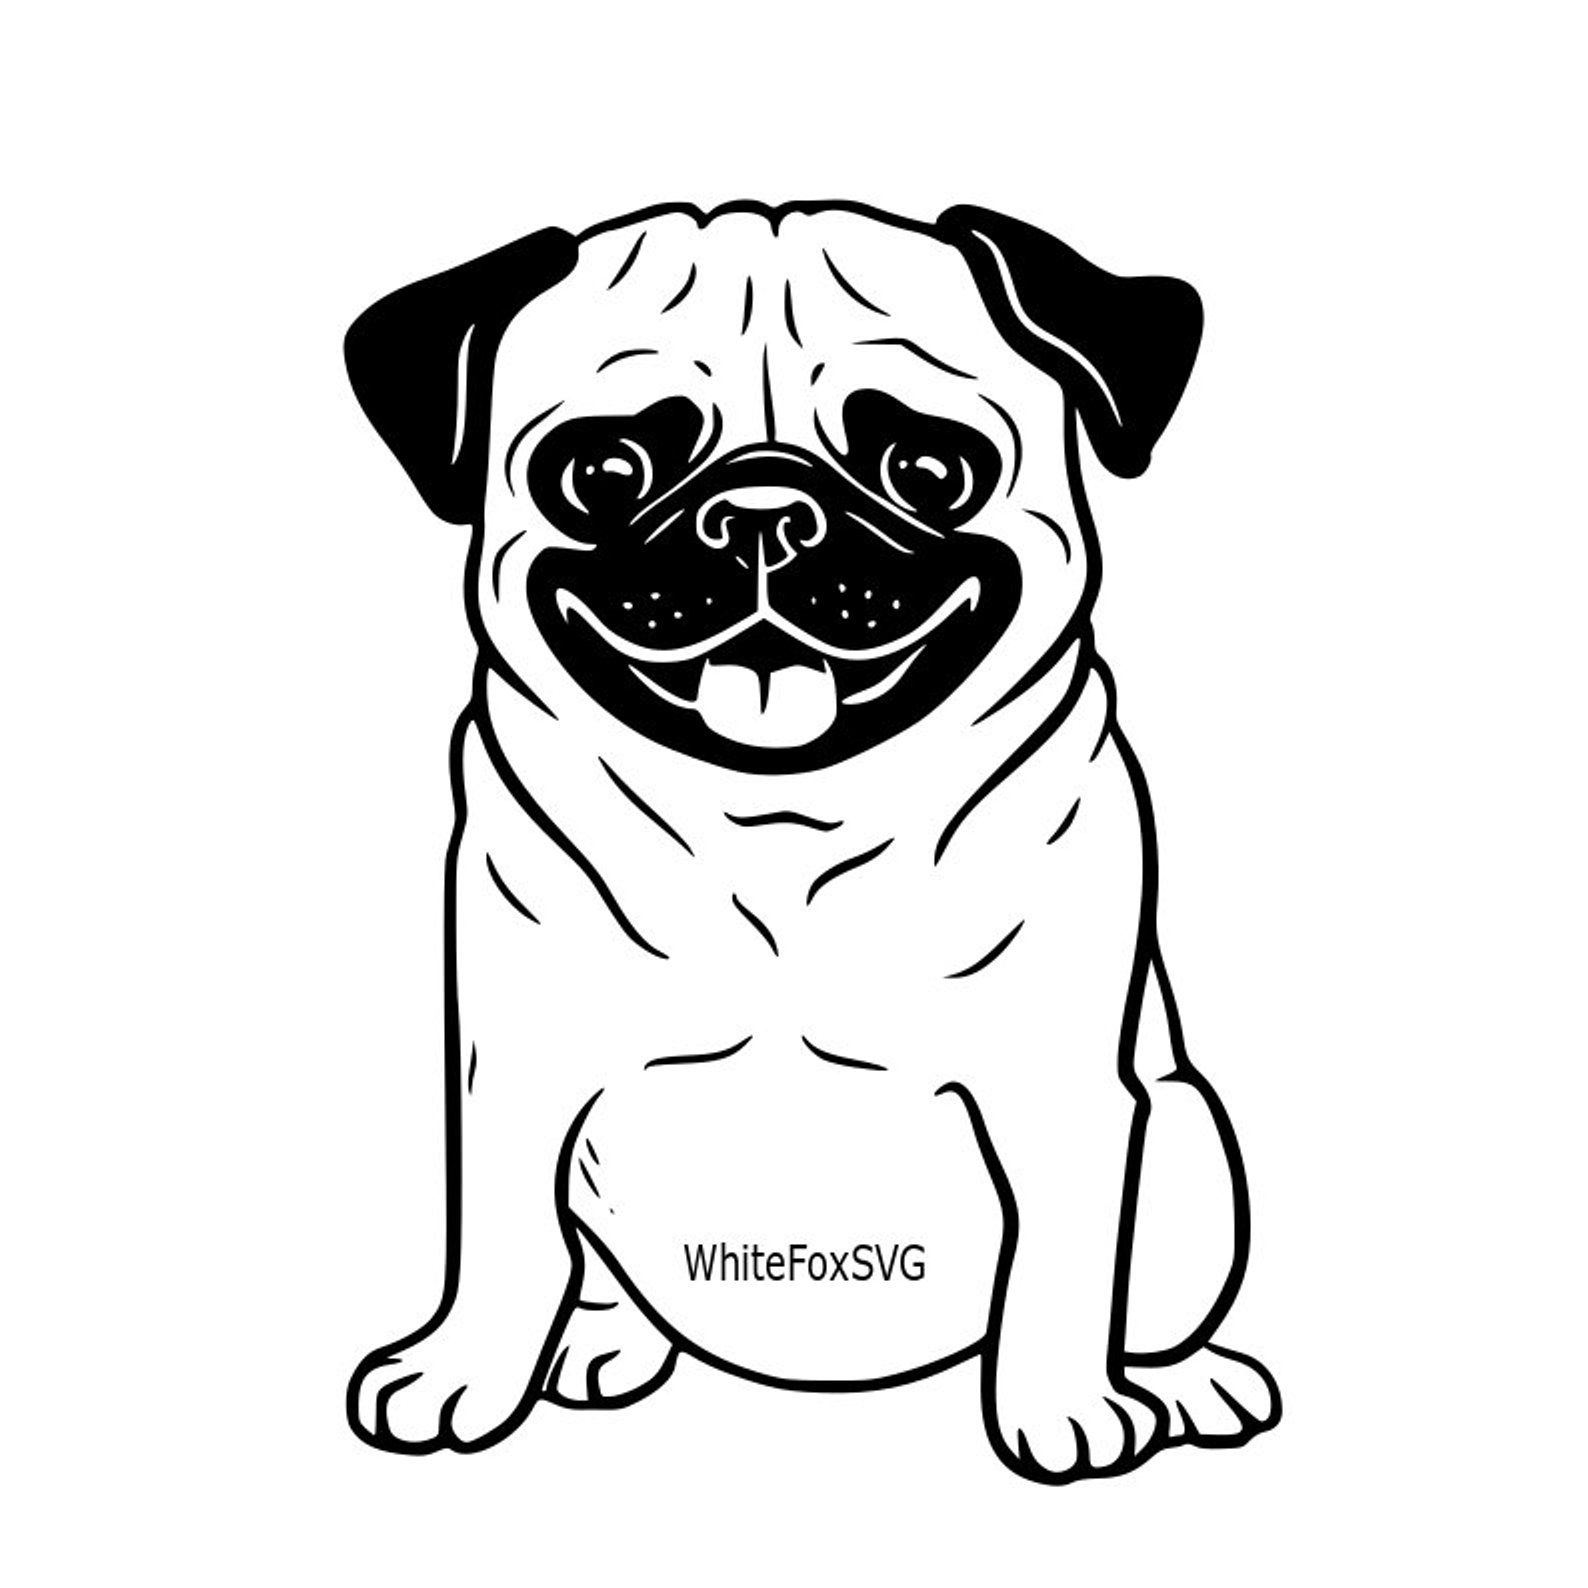 Funny cute adorable pug puppy smiling puppy SVG dog SVG.